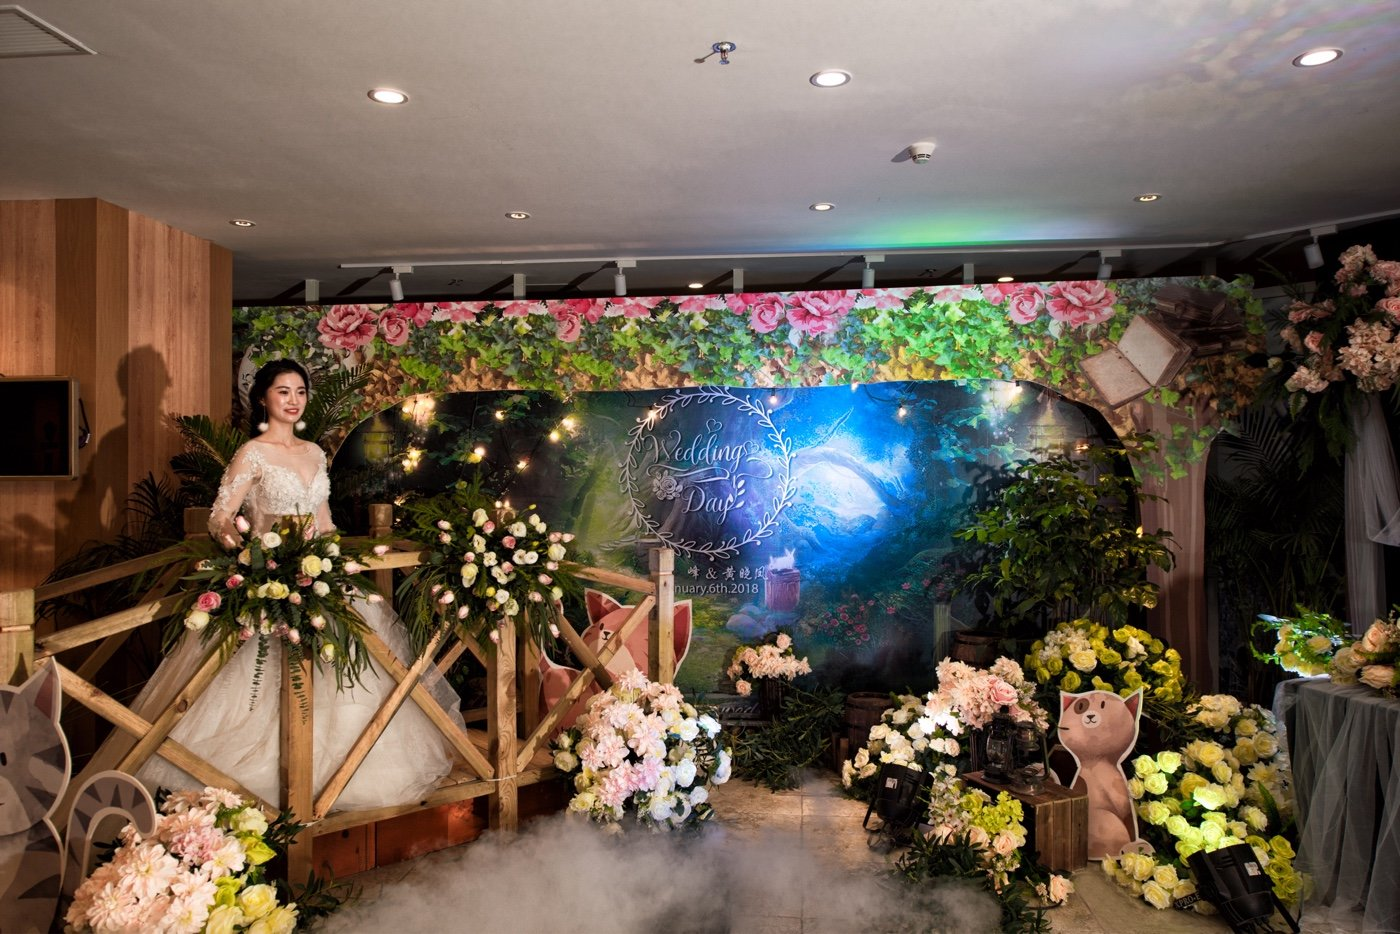 「Fantasy Wedding」&琪瑞宴会中心15